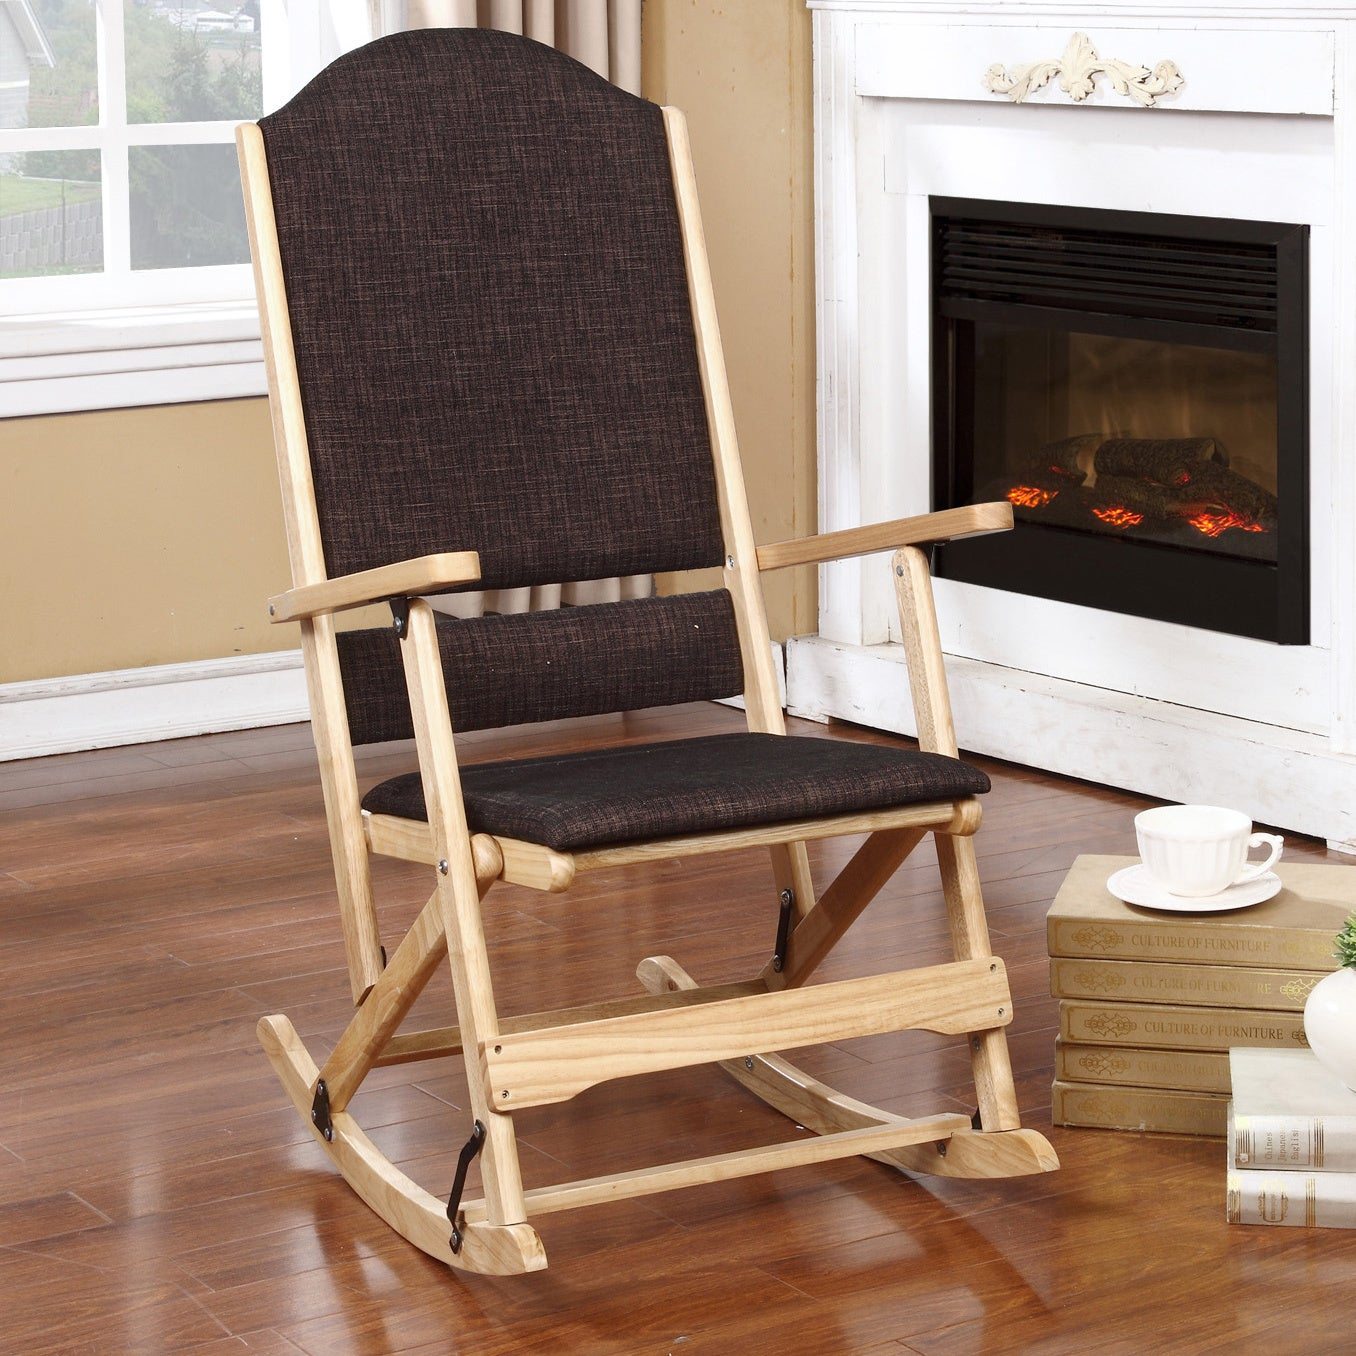 Aspen Natural Brown Wood Folding Rocking Chair Intended For Folding Bentwood Rocking Chairs With Extendable Footrest And Removable Cover (#1 of 20)